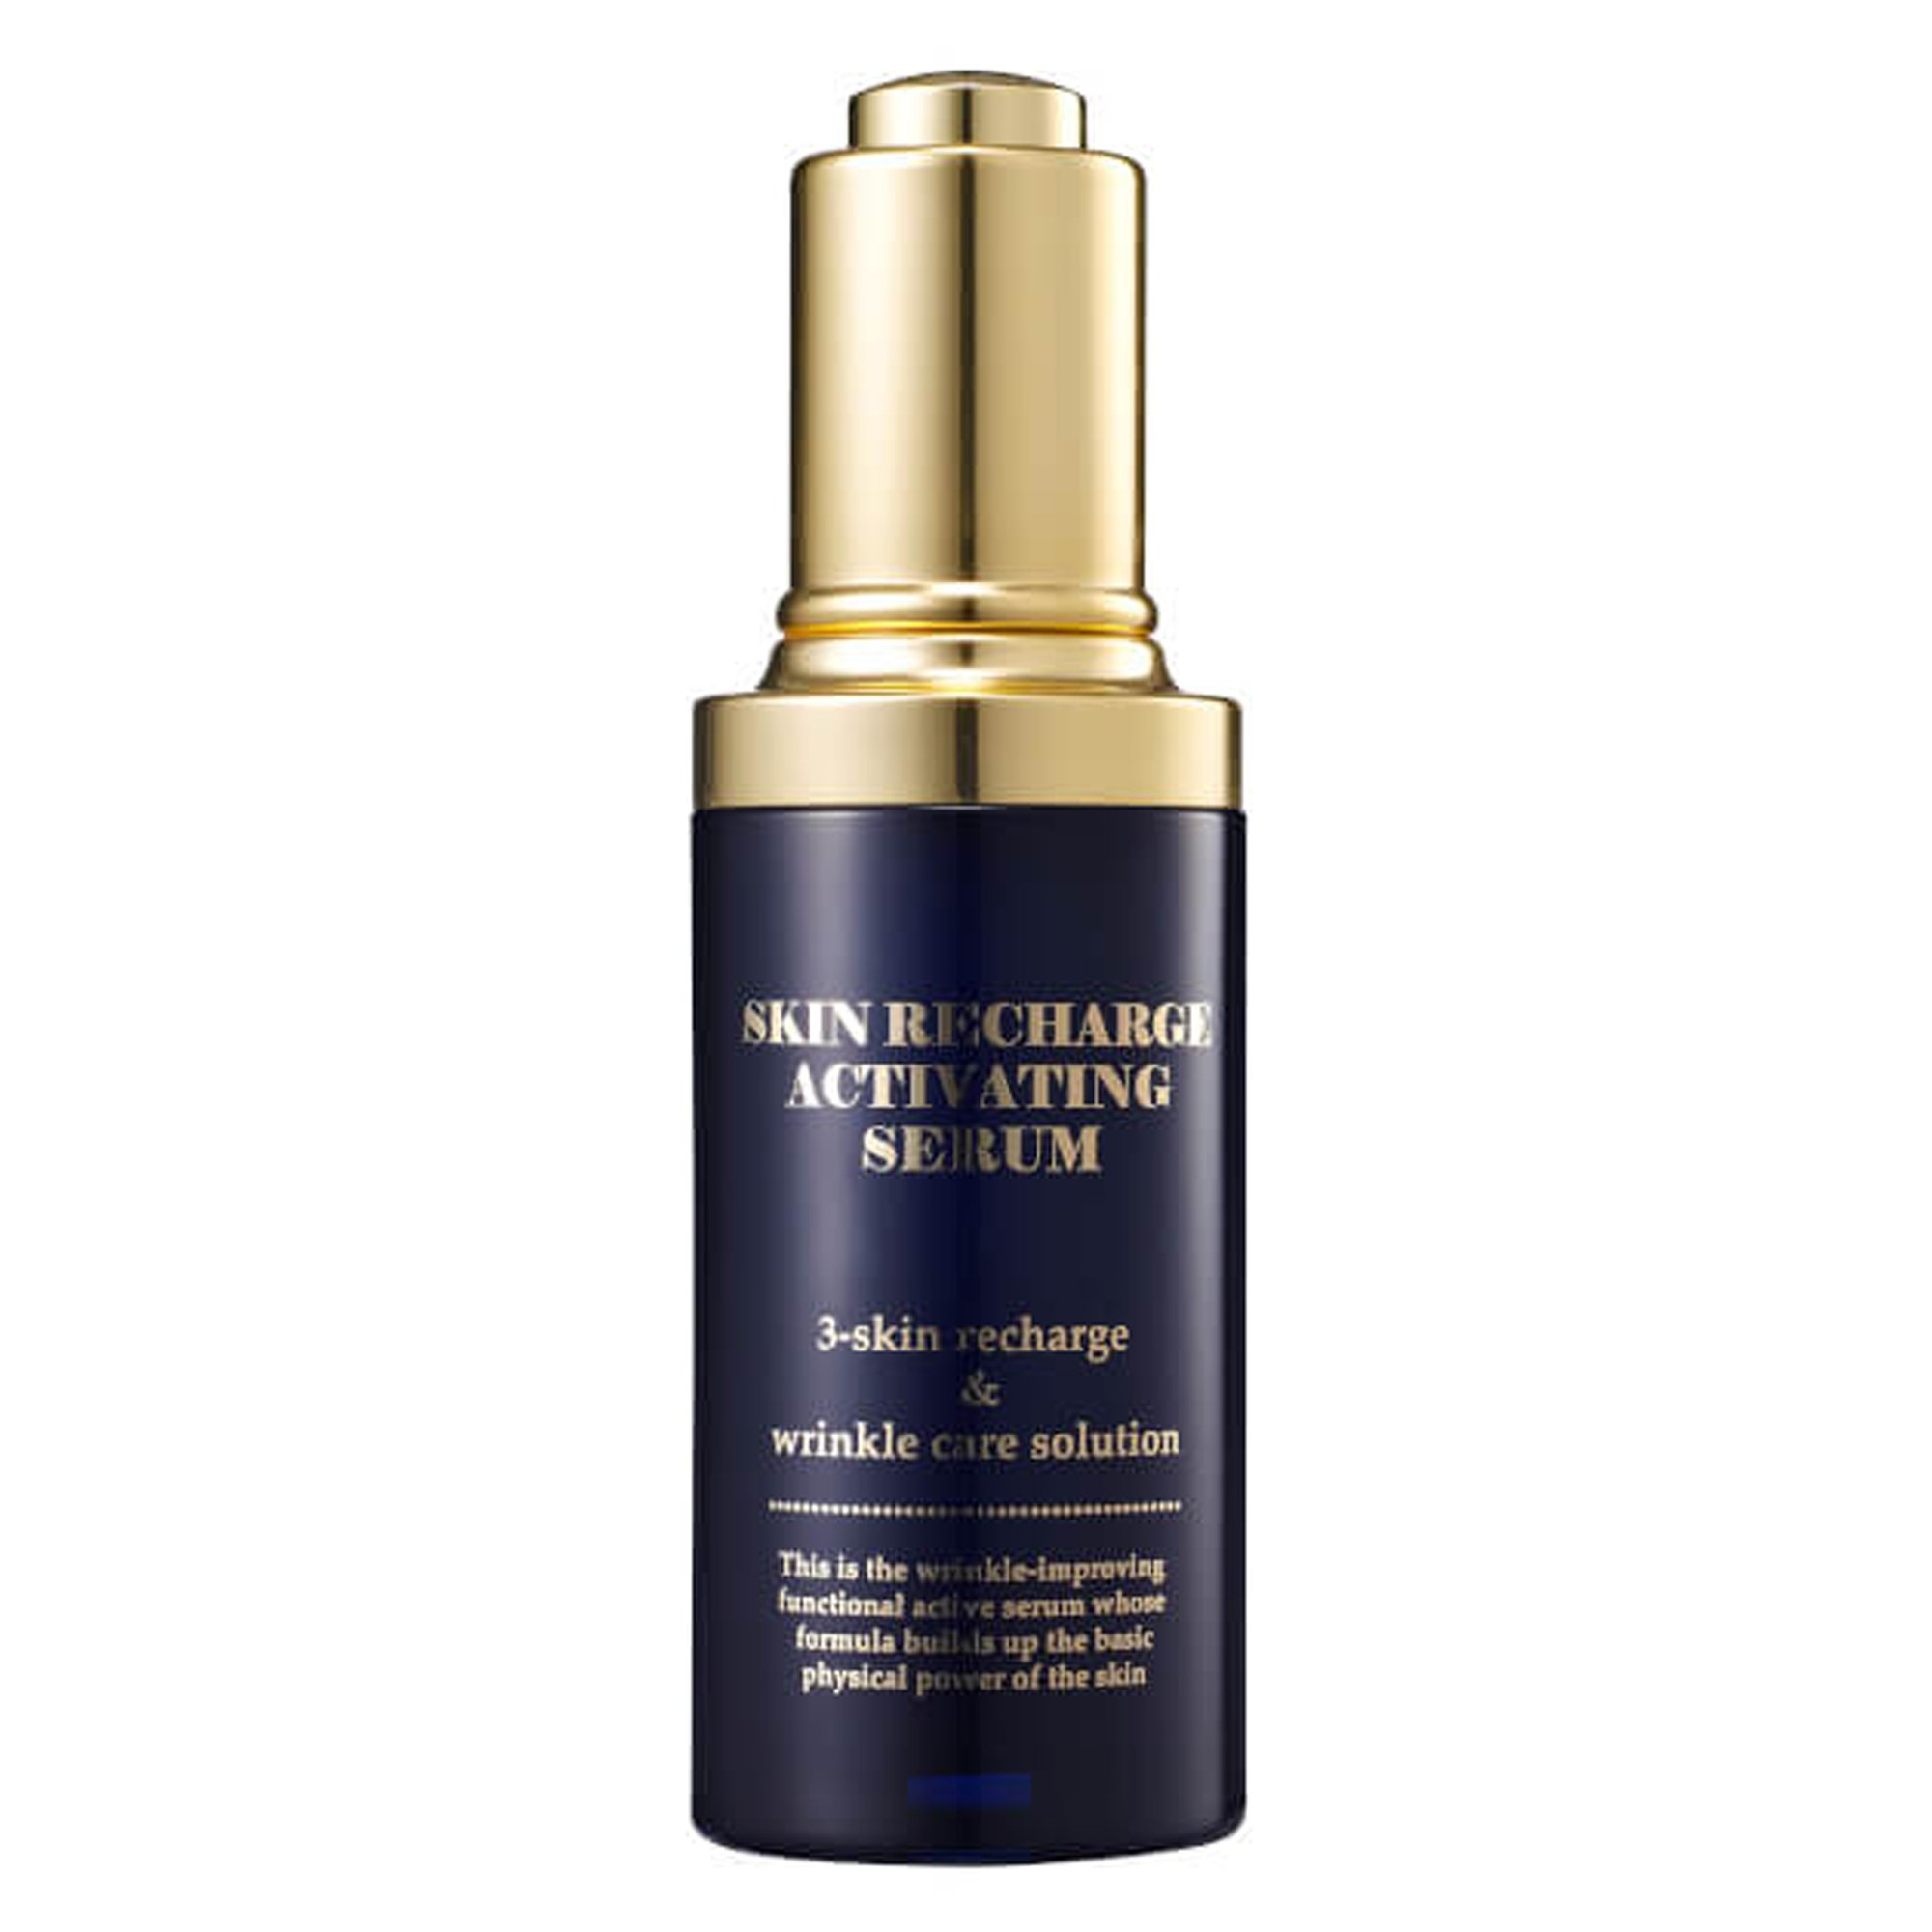 Mizon Skin Recharge Activating Serum